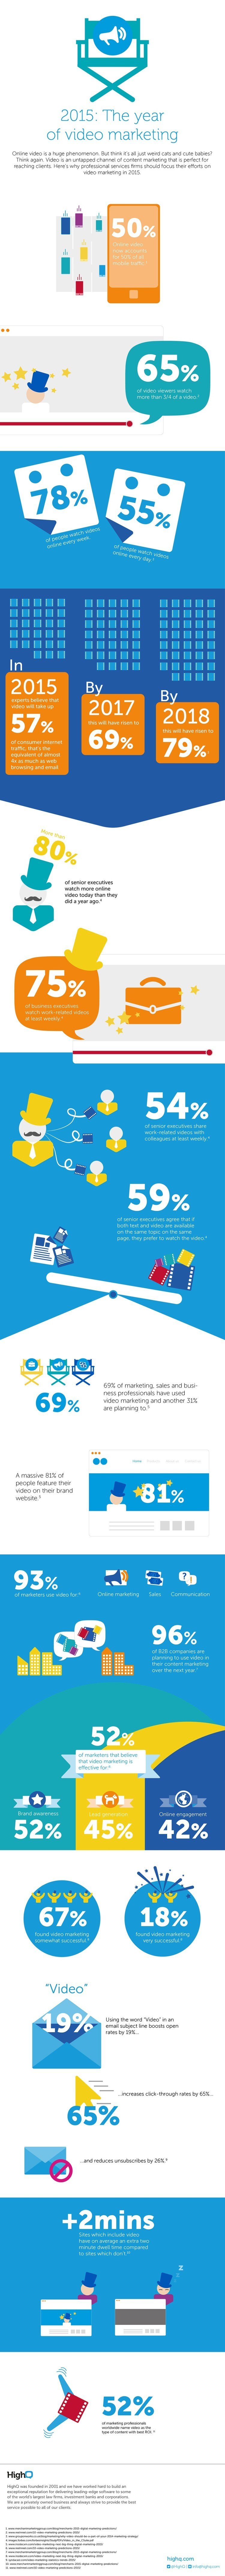 The Year of Video Marketing [Infographic]